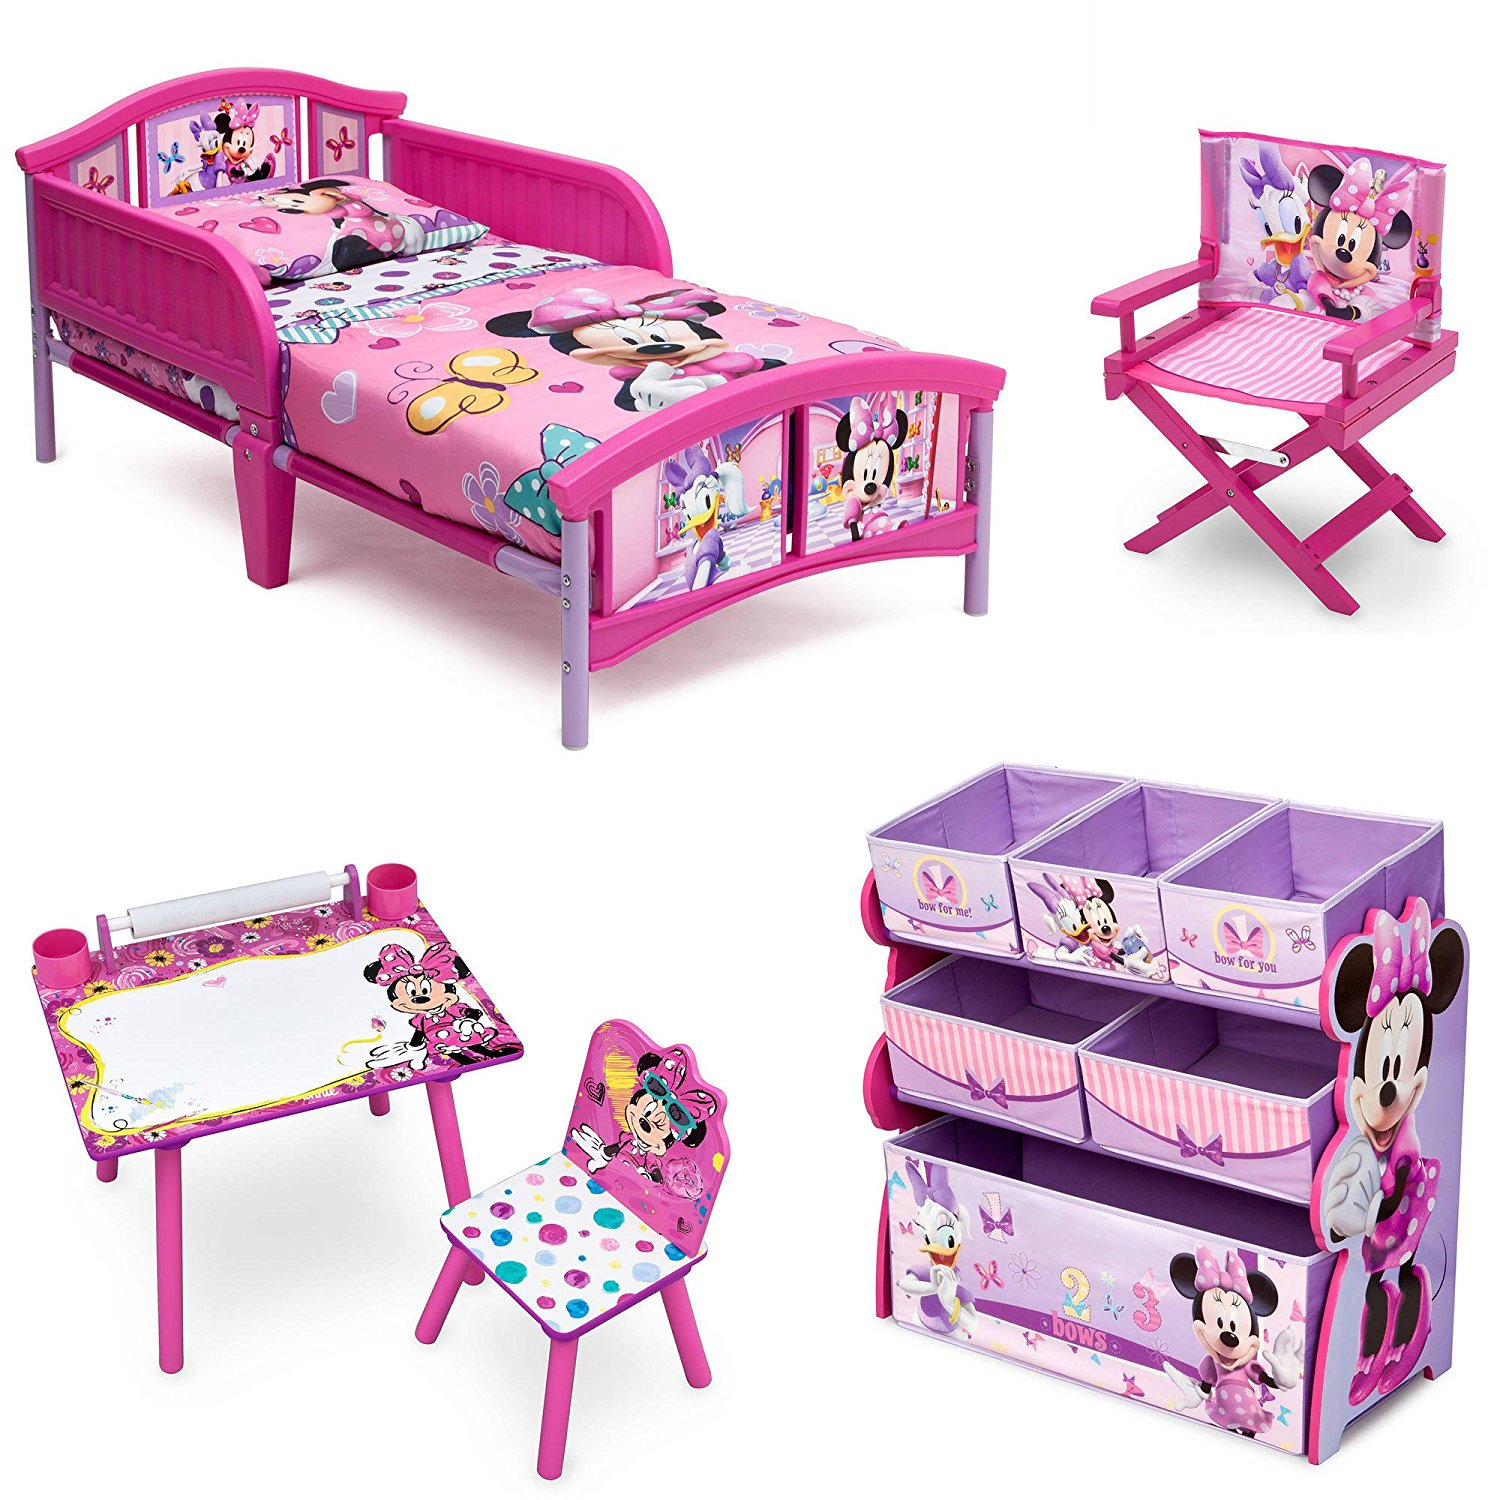 minnie mouse chair walmart sports bar tables and chairs disney room in a box 4 piece com departments